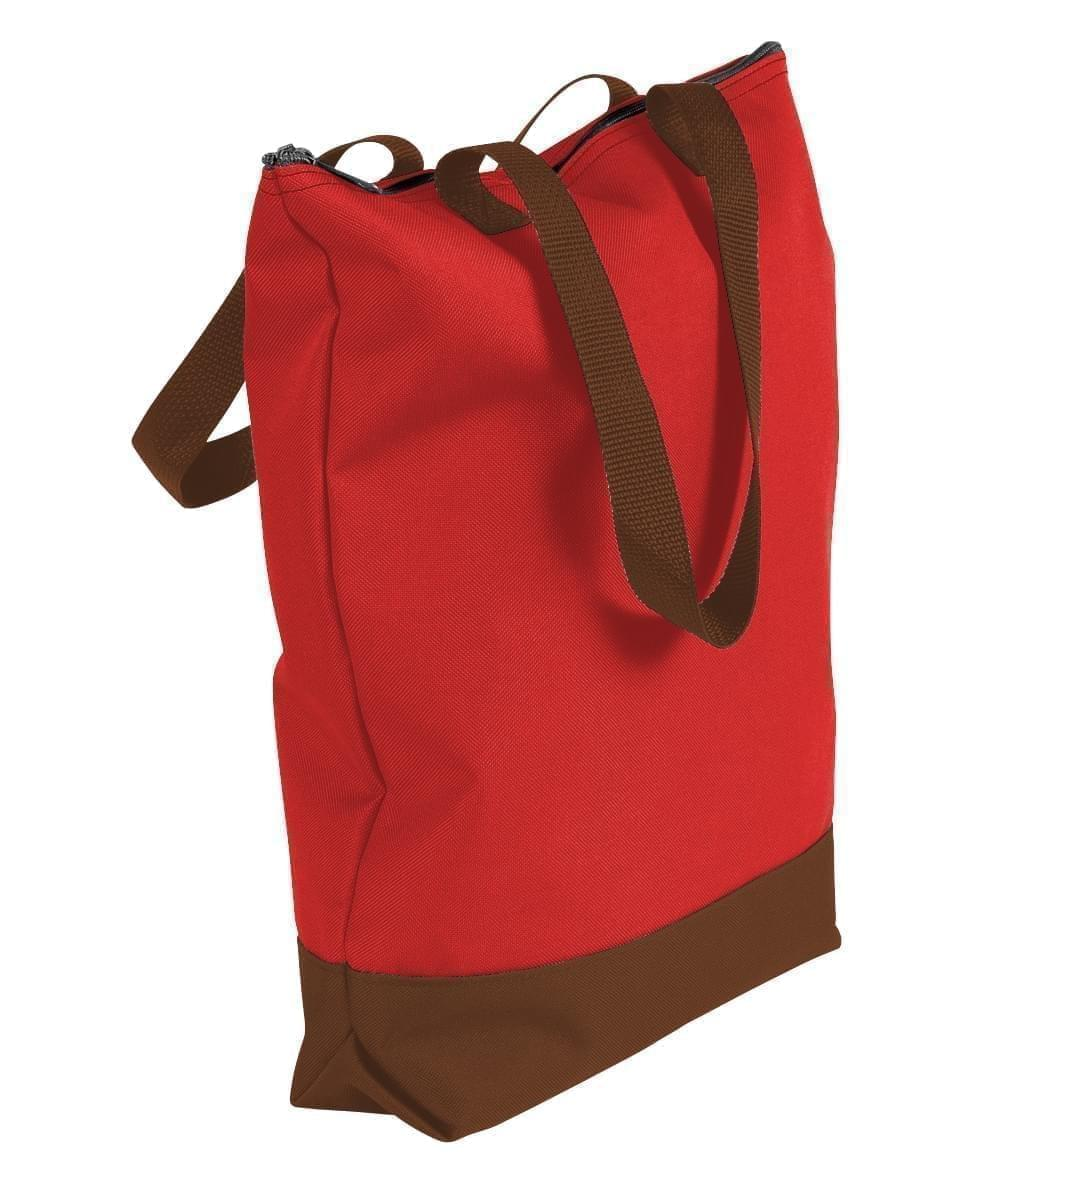 USA Made Canvas Portfolio Tote Bags, Red-Brown, 1AAMX1UAES